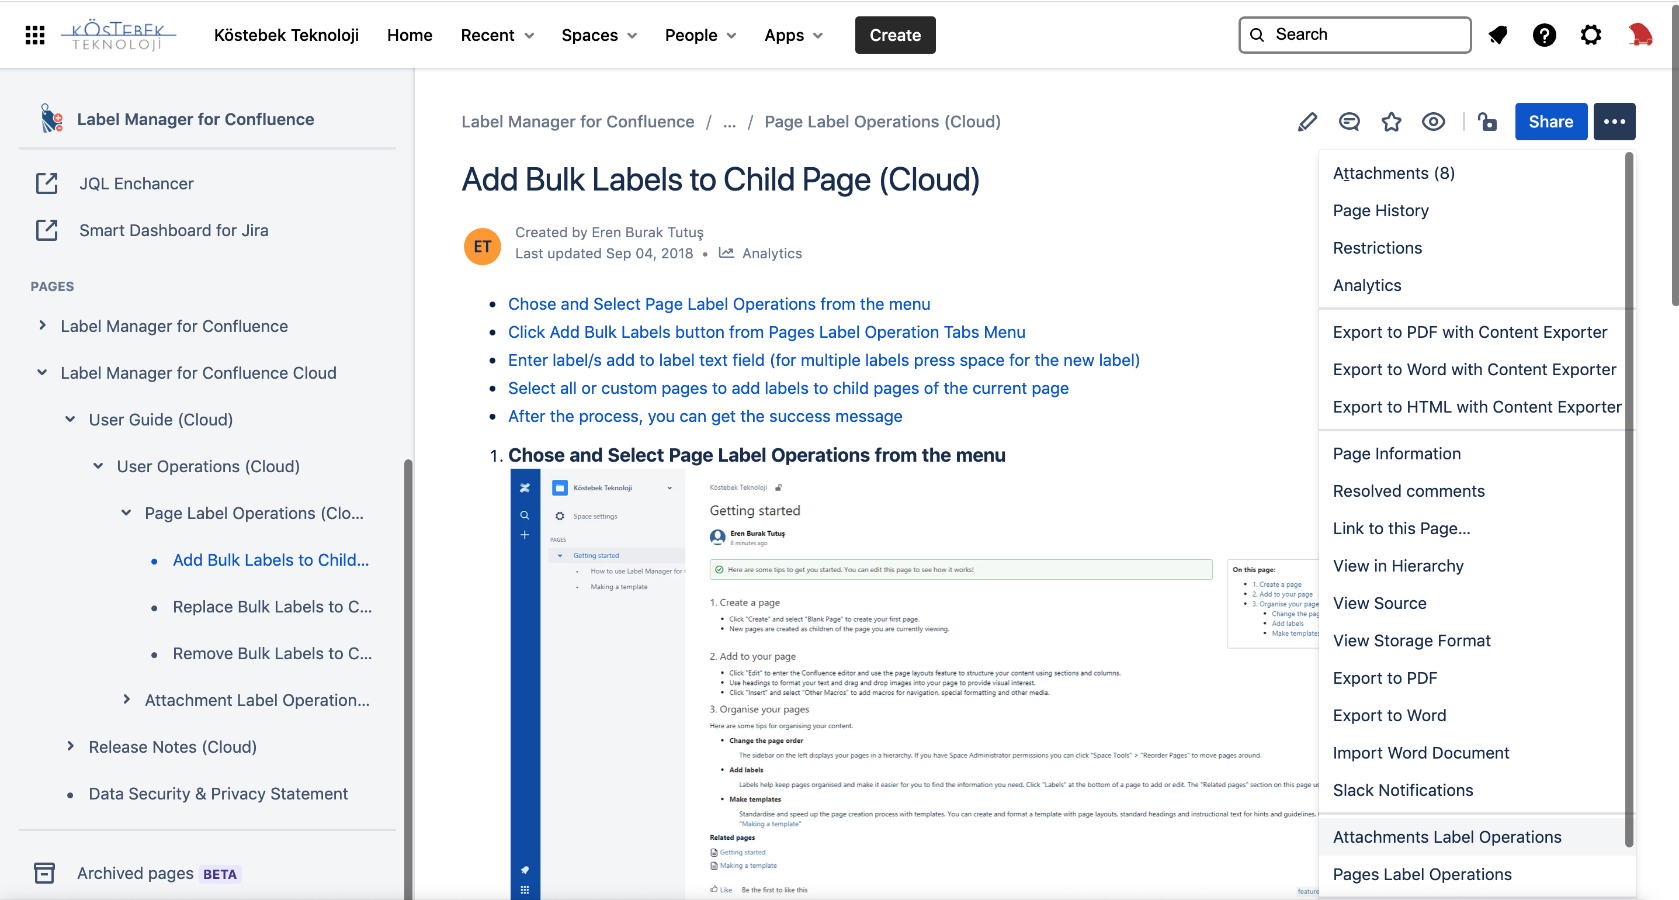 Label Manager for Confluence 3